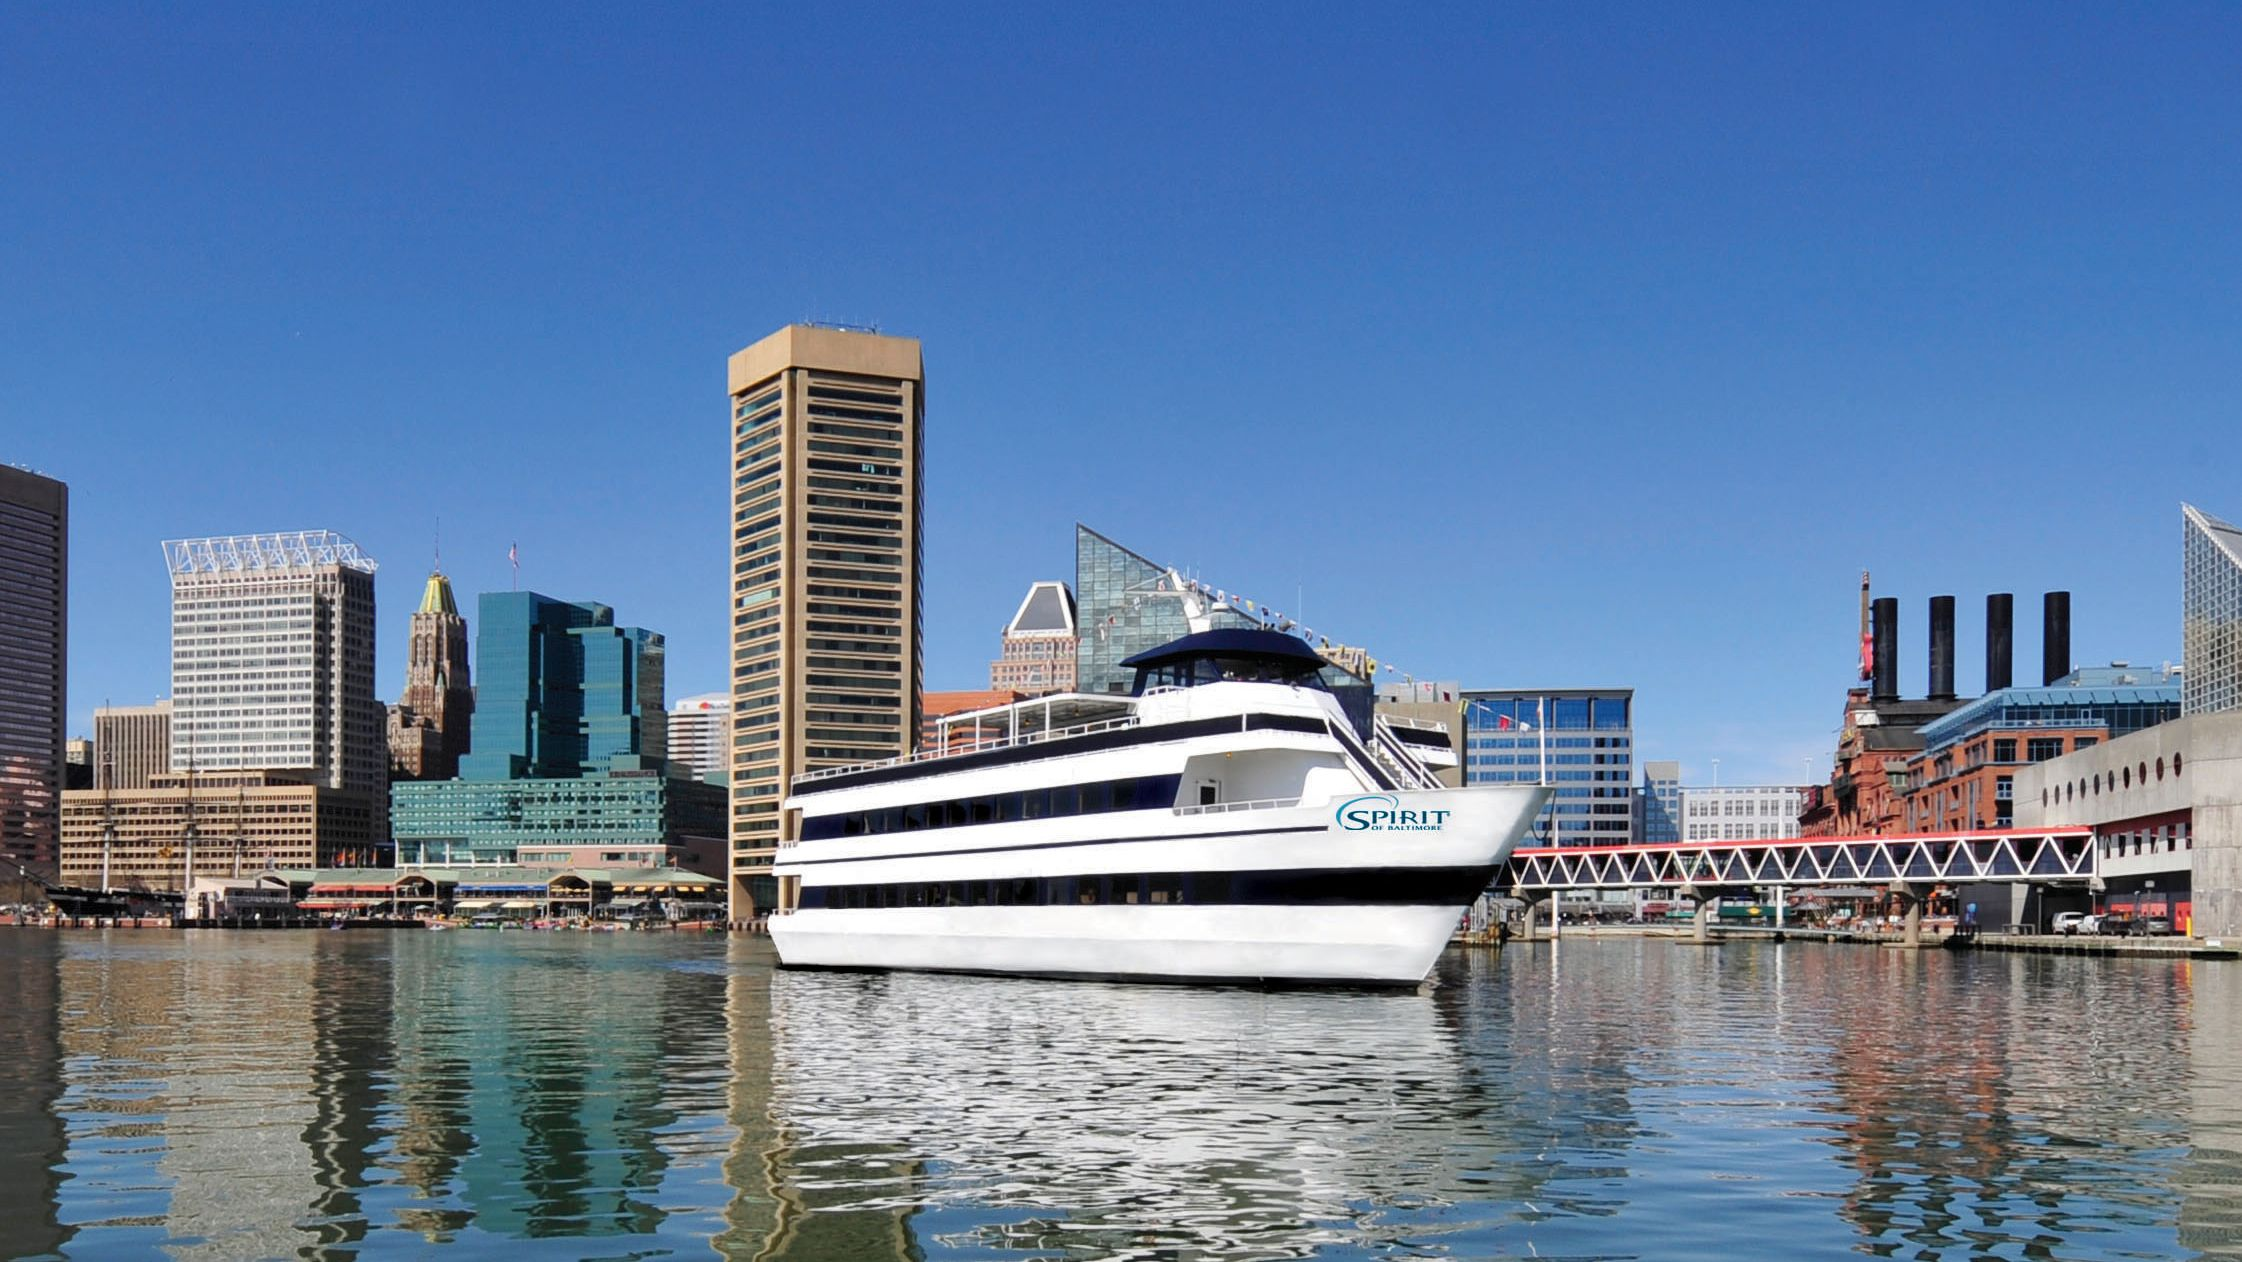 Exterior view of the Spirit of Baltimore cruise ship